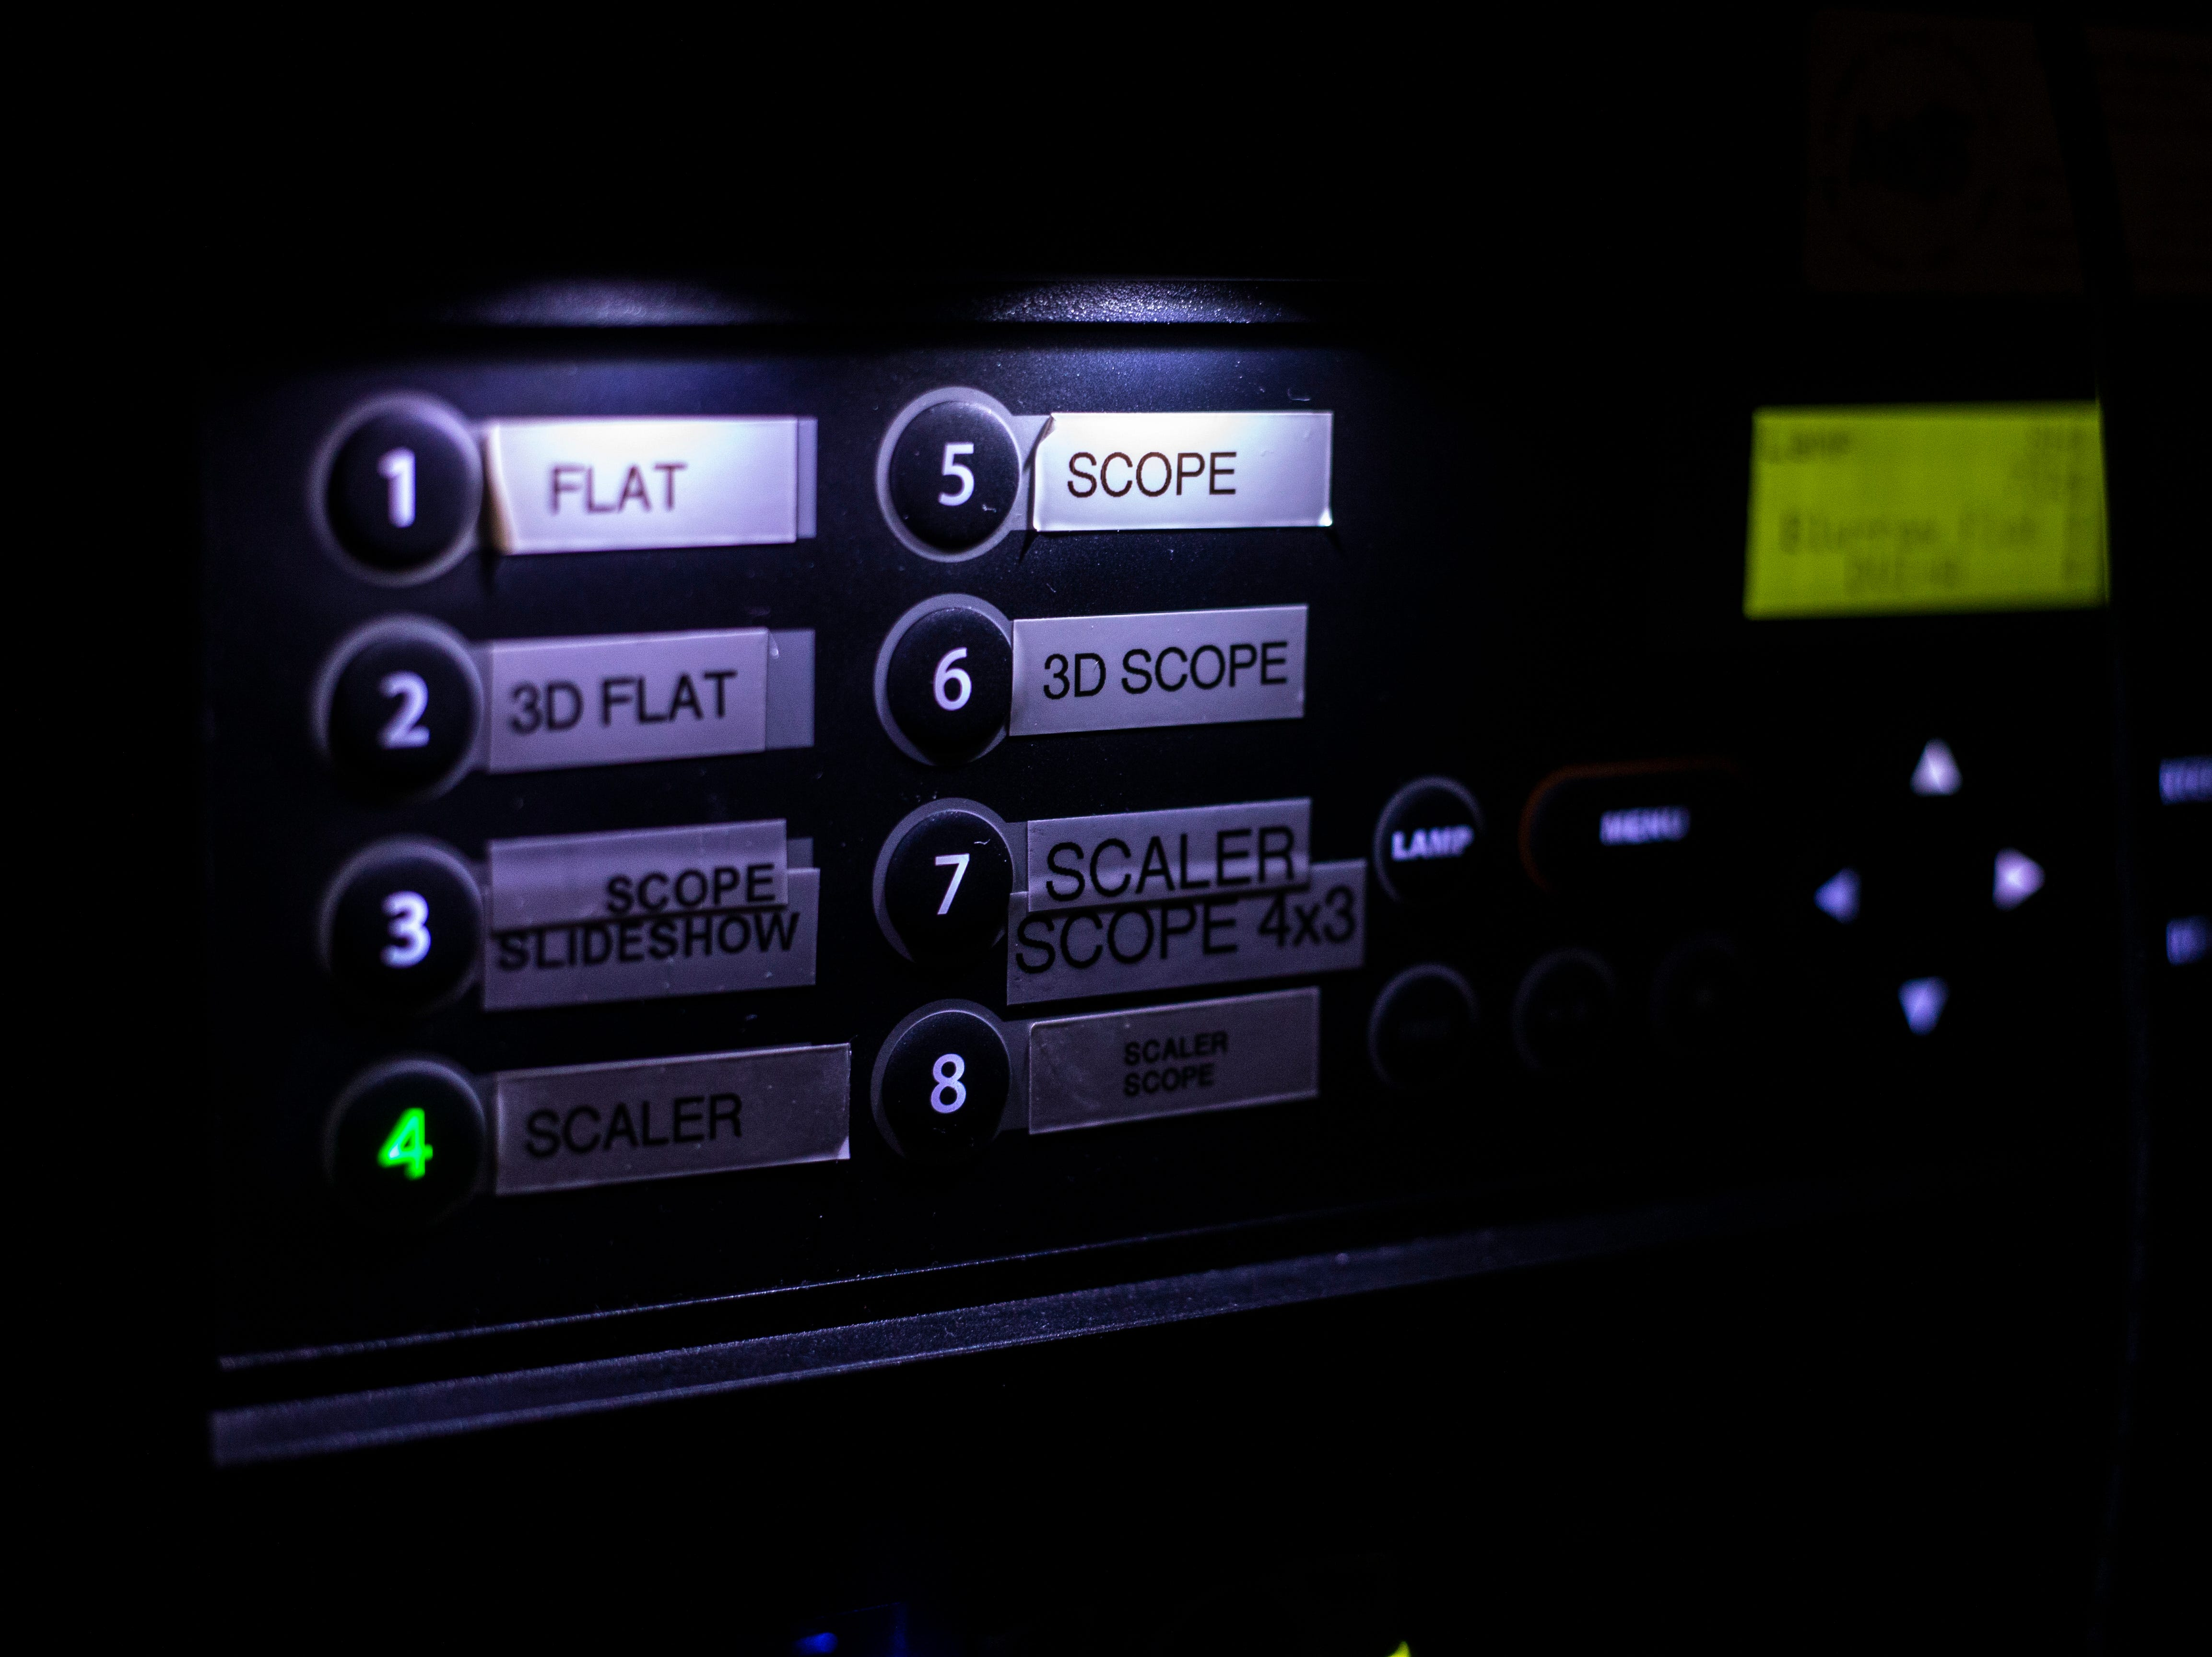 """Buttons are illuminated in the projection room during a """"Late Shift at the Grindhouse"""" movie screening, Wednesday, April 17, 2019, at FilmScene in Iowa City, Iowa."""